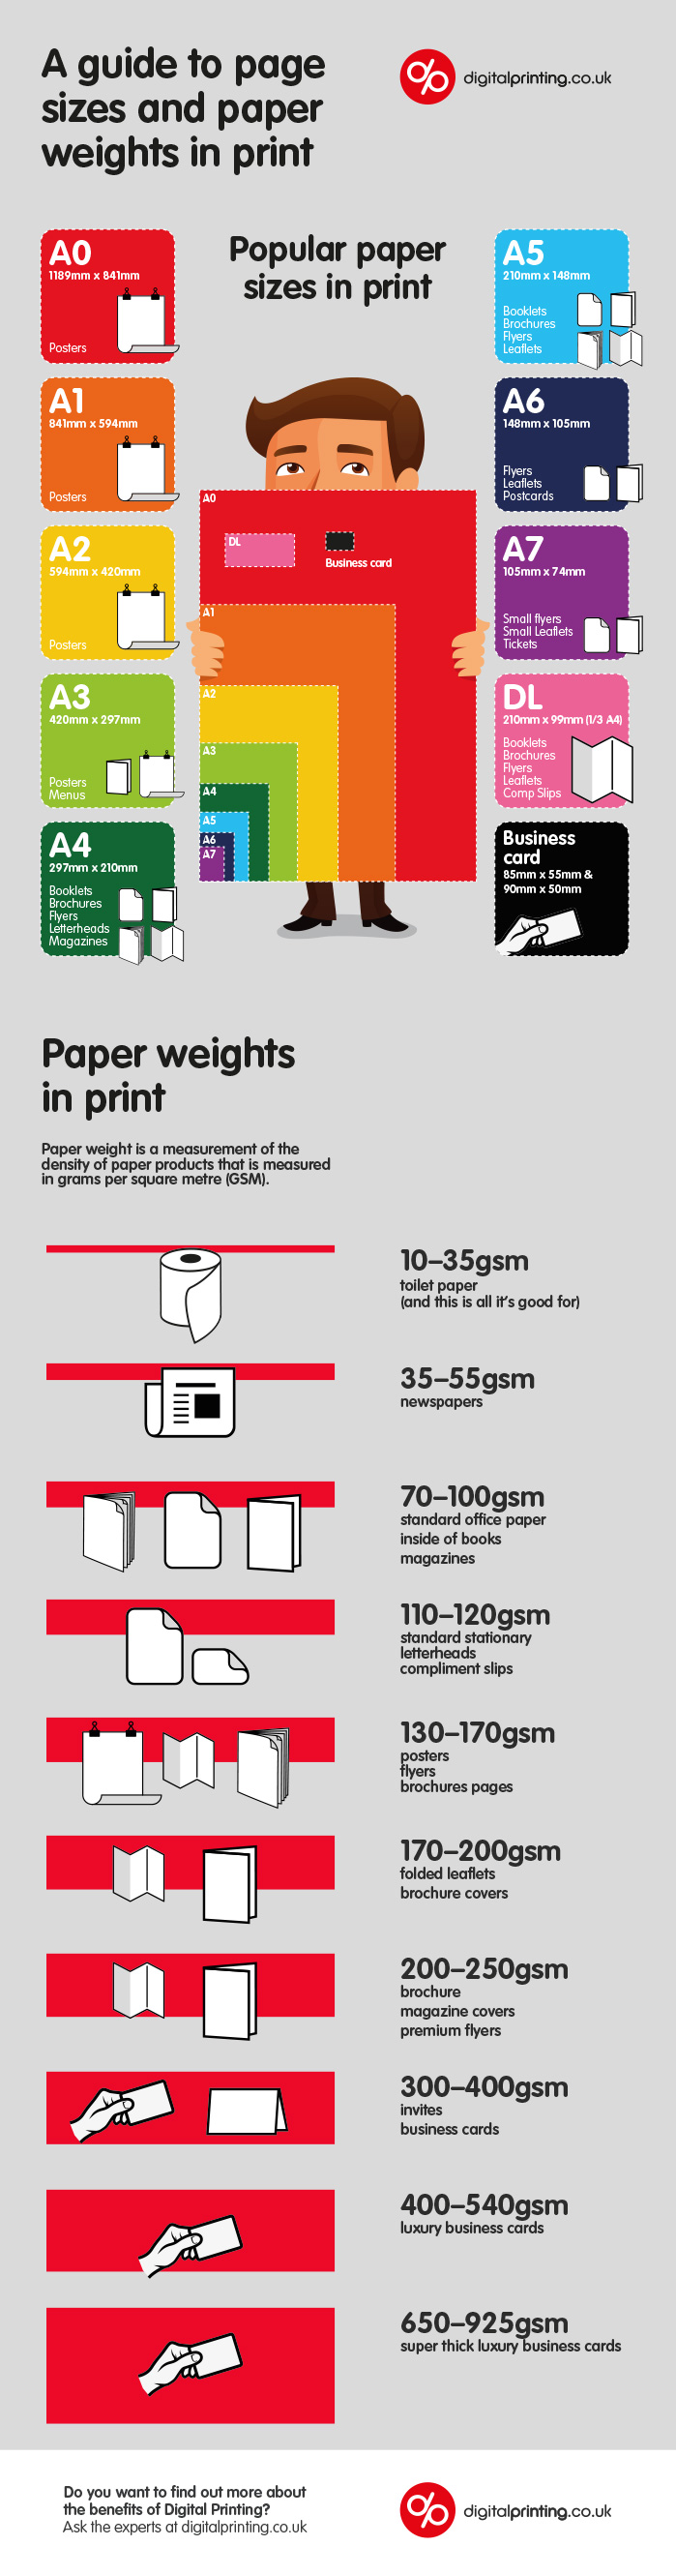 infographic page sizes and paper weights in print digital printing